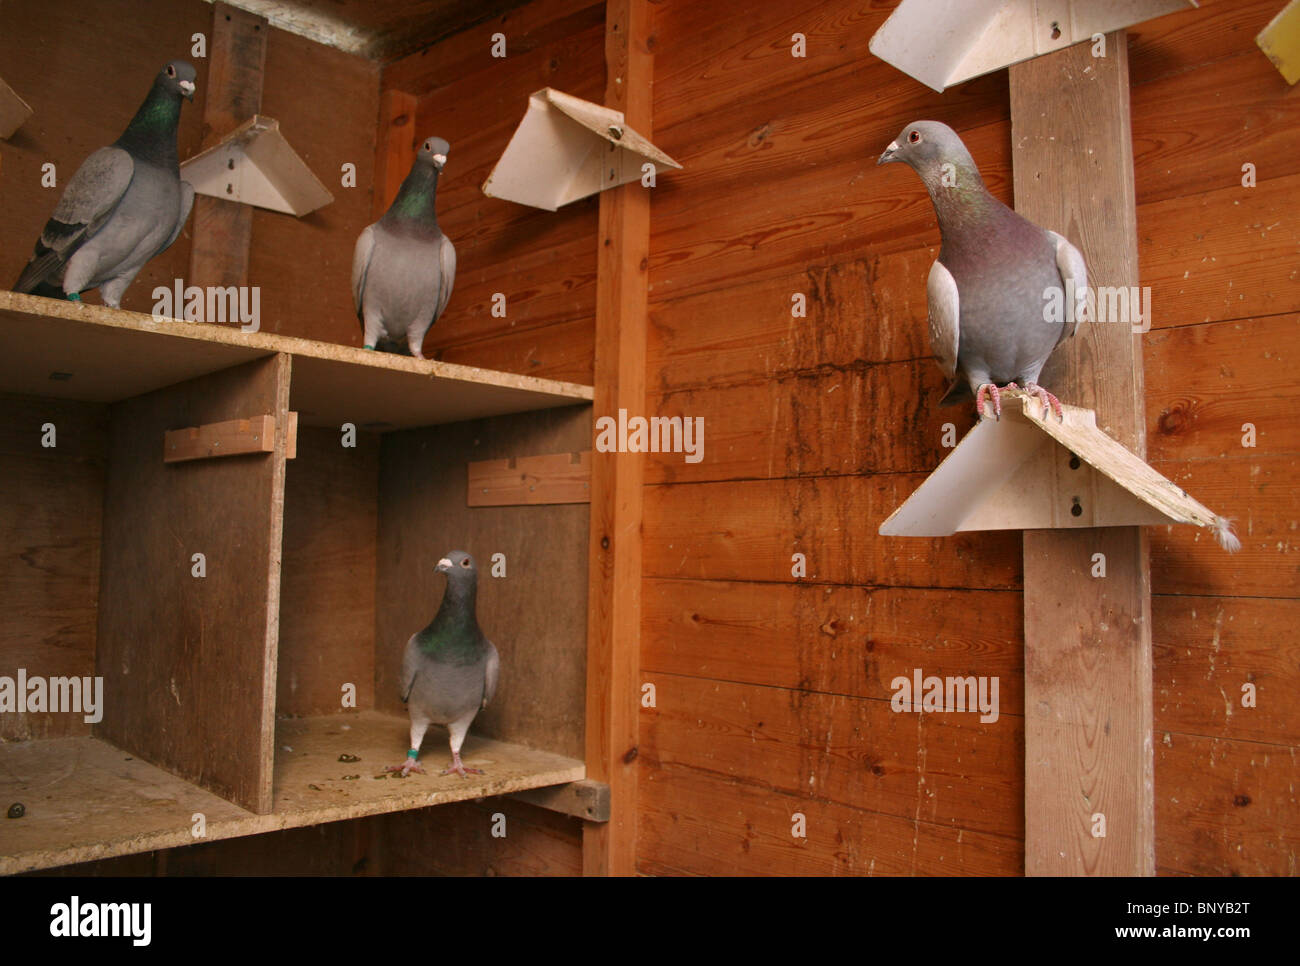 Racing pigeons in their loft, Rutland, UK - Stock Image